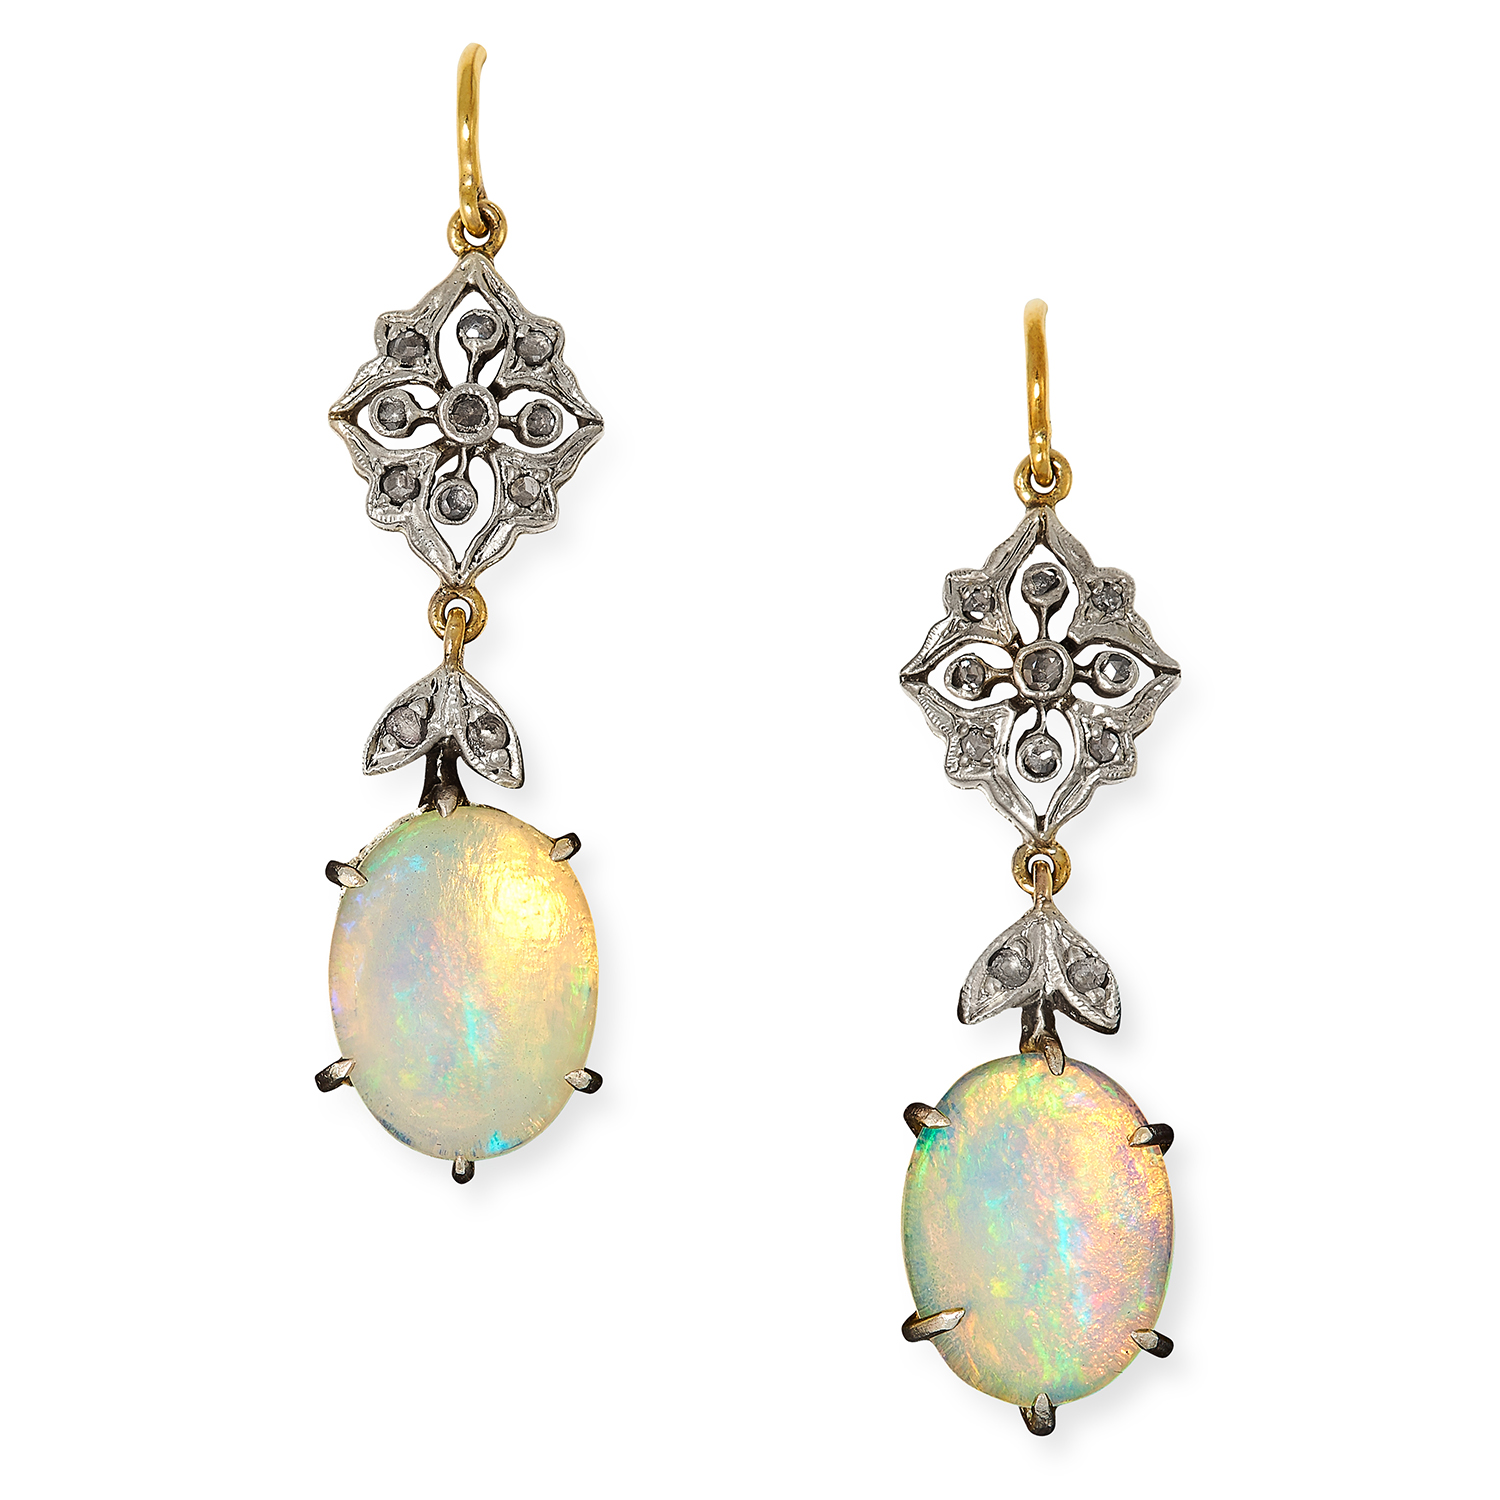 OPAL AND DIAMOND EARRINGS each set with rose cut diamonds and suspending a cabochon opal, 3.7cm, 3.